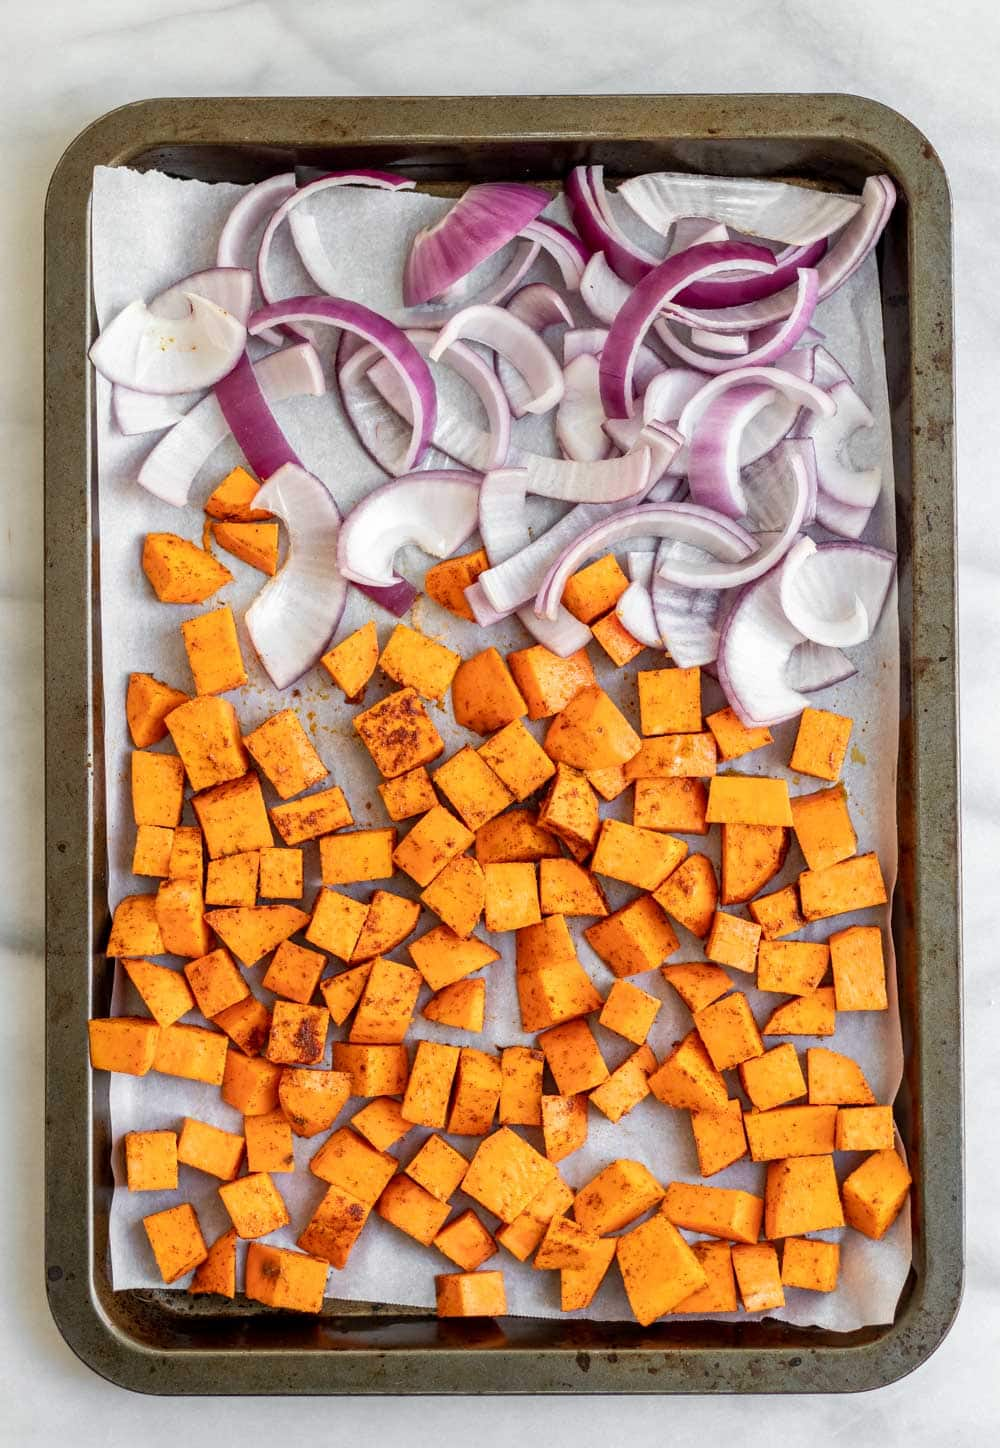 Cubed sweet potato and red onion on a baking tray.